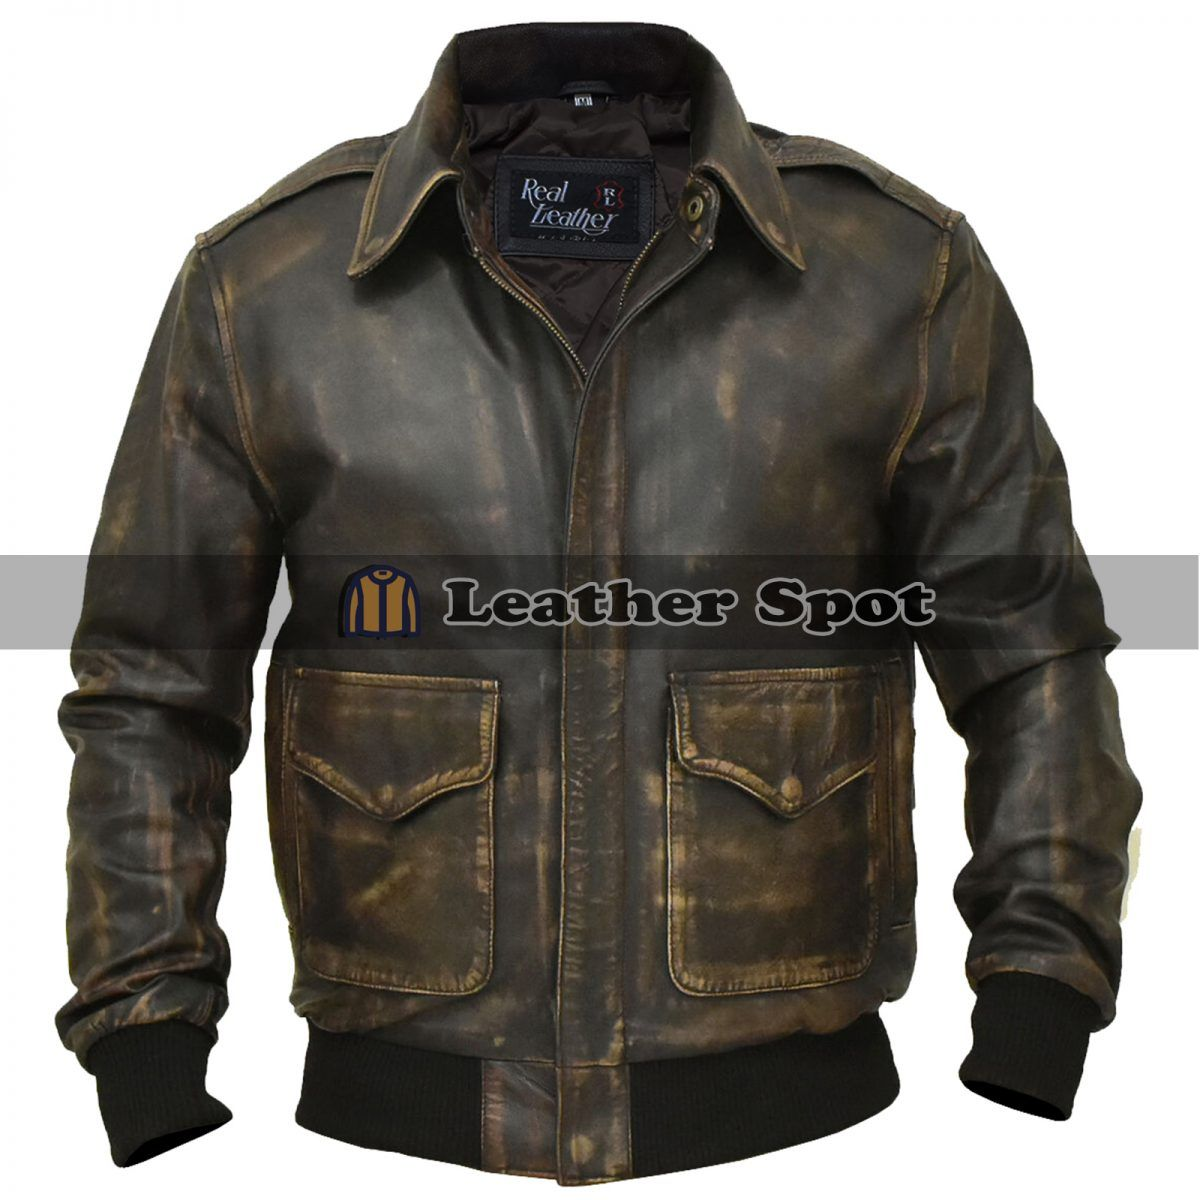 A 2 Aviator Air Force Flight Distressed Brown Military Jacket Lm Jackets Distressed Leather Jacket Aviator Leather Jacket Leather Jacket Men [ 1200 x 1200 Pixel ]